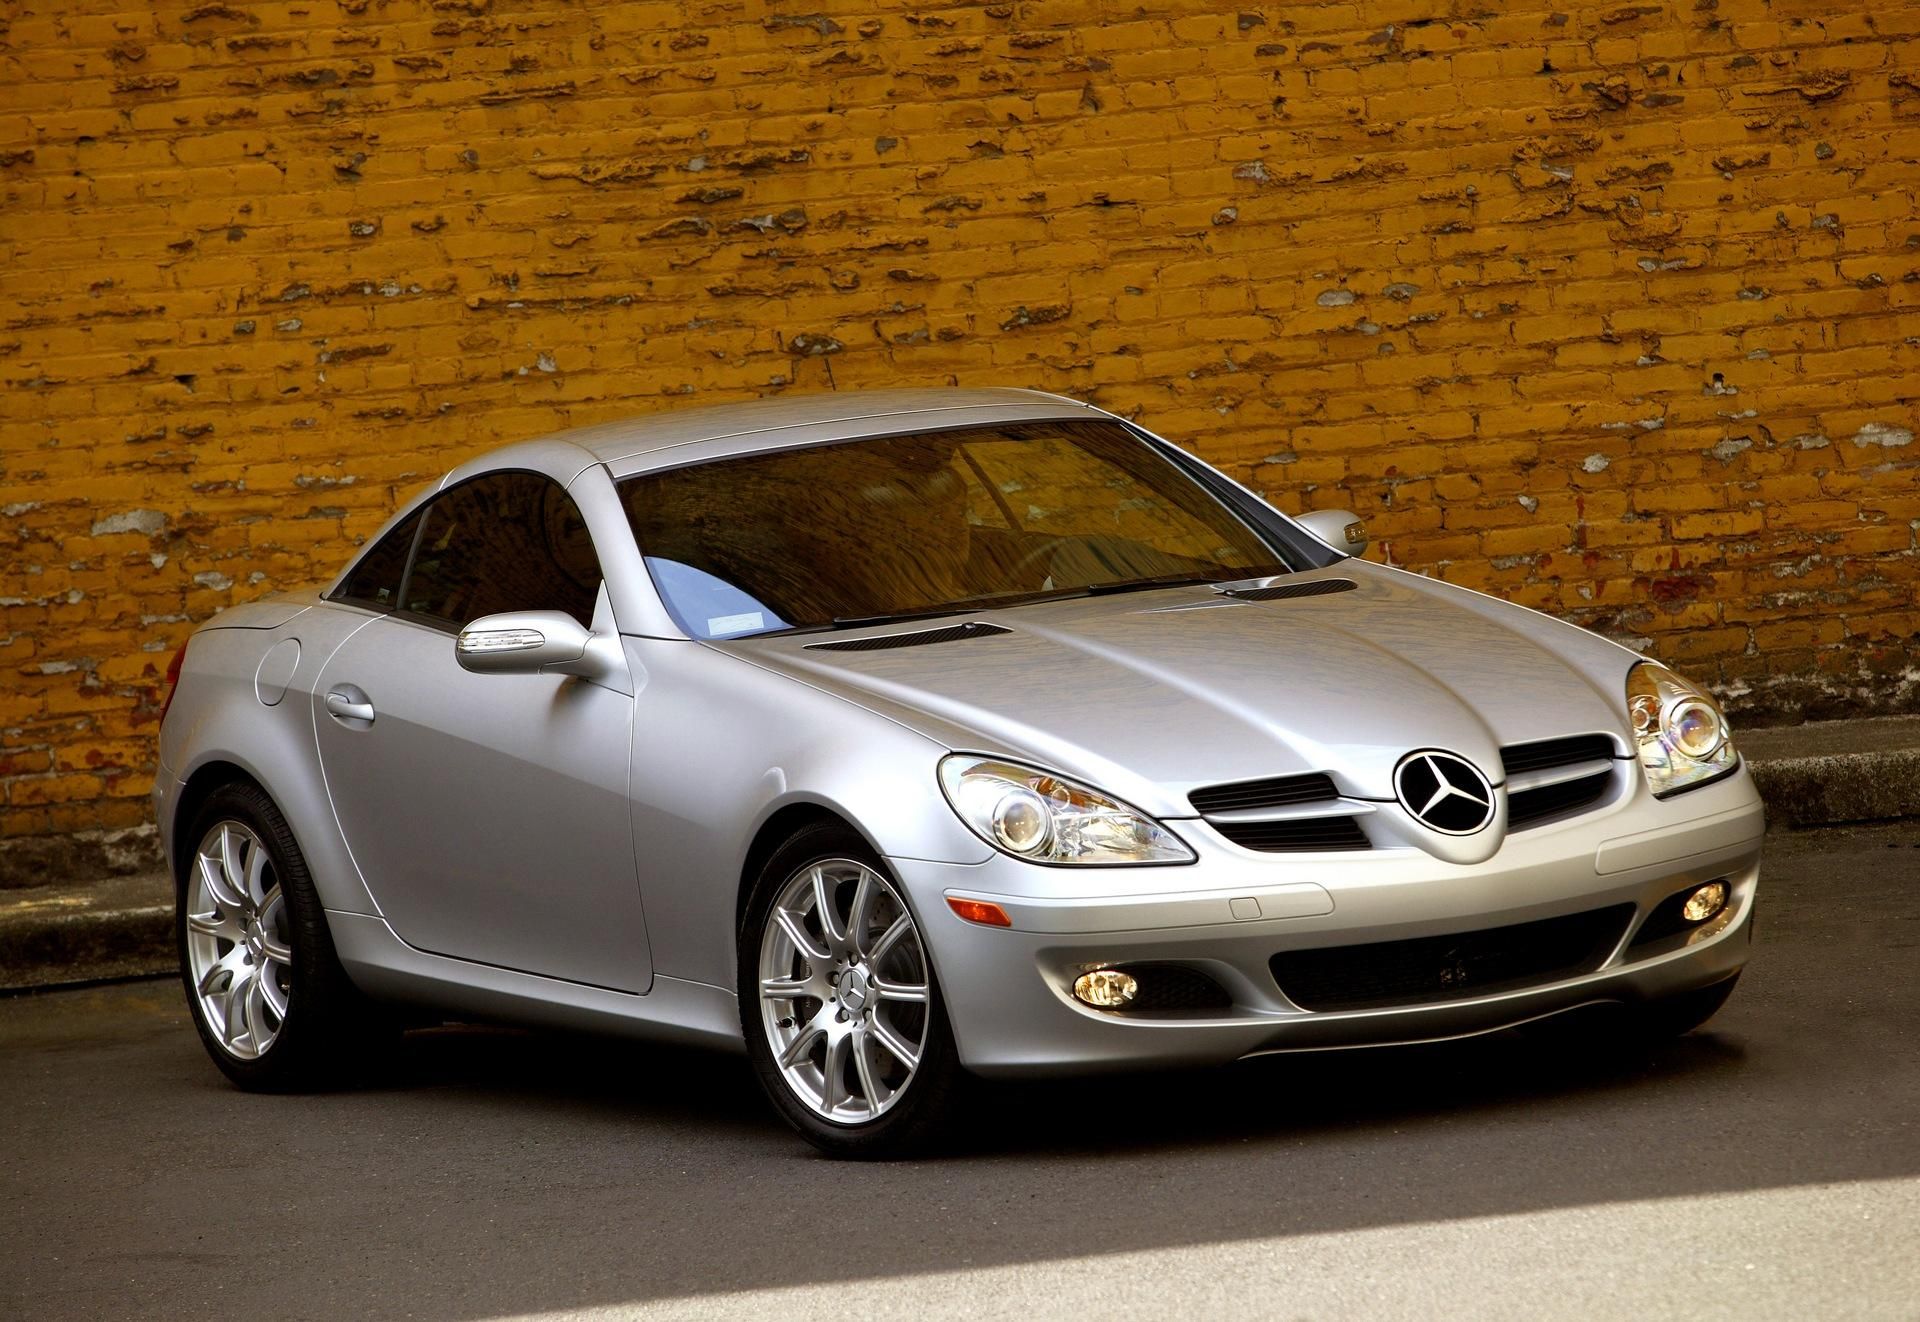 2008 mercedes benz slk class images photo mercedes slk for Mercedes benz slk brabus price